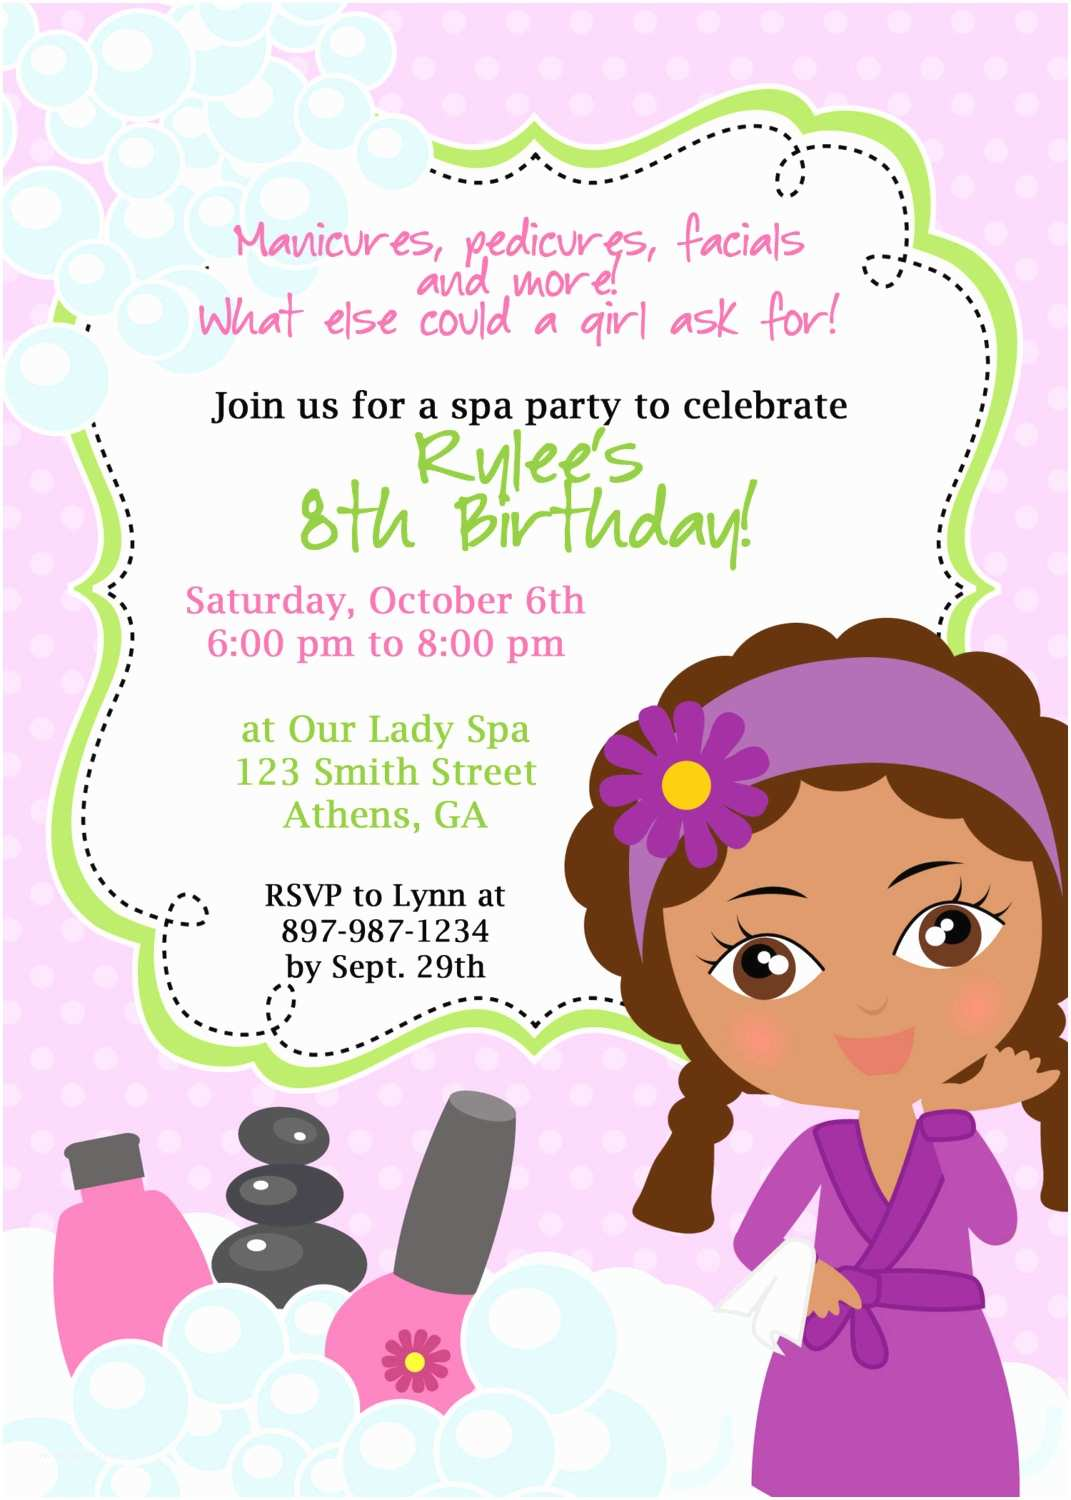 Spa Party Invitations Diy Sassy Spa Party Invitation African American Little Girl